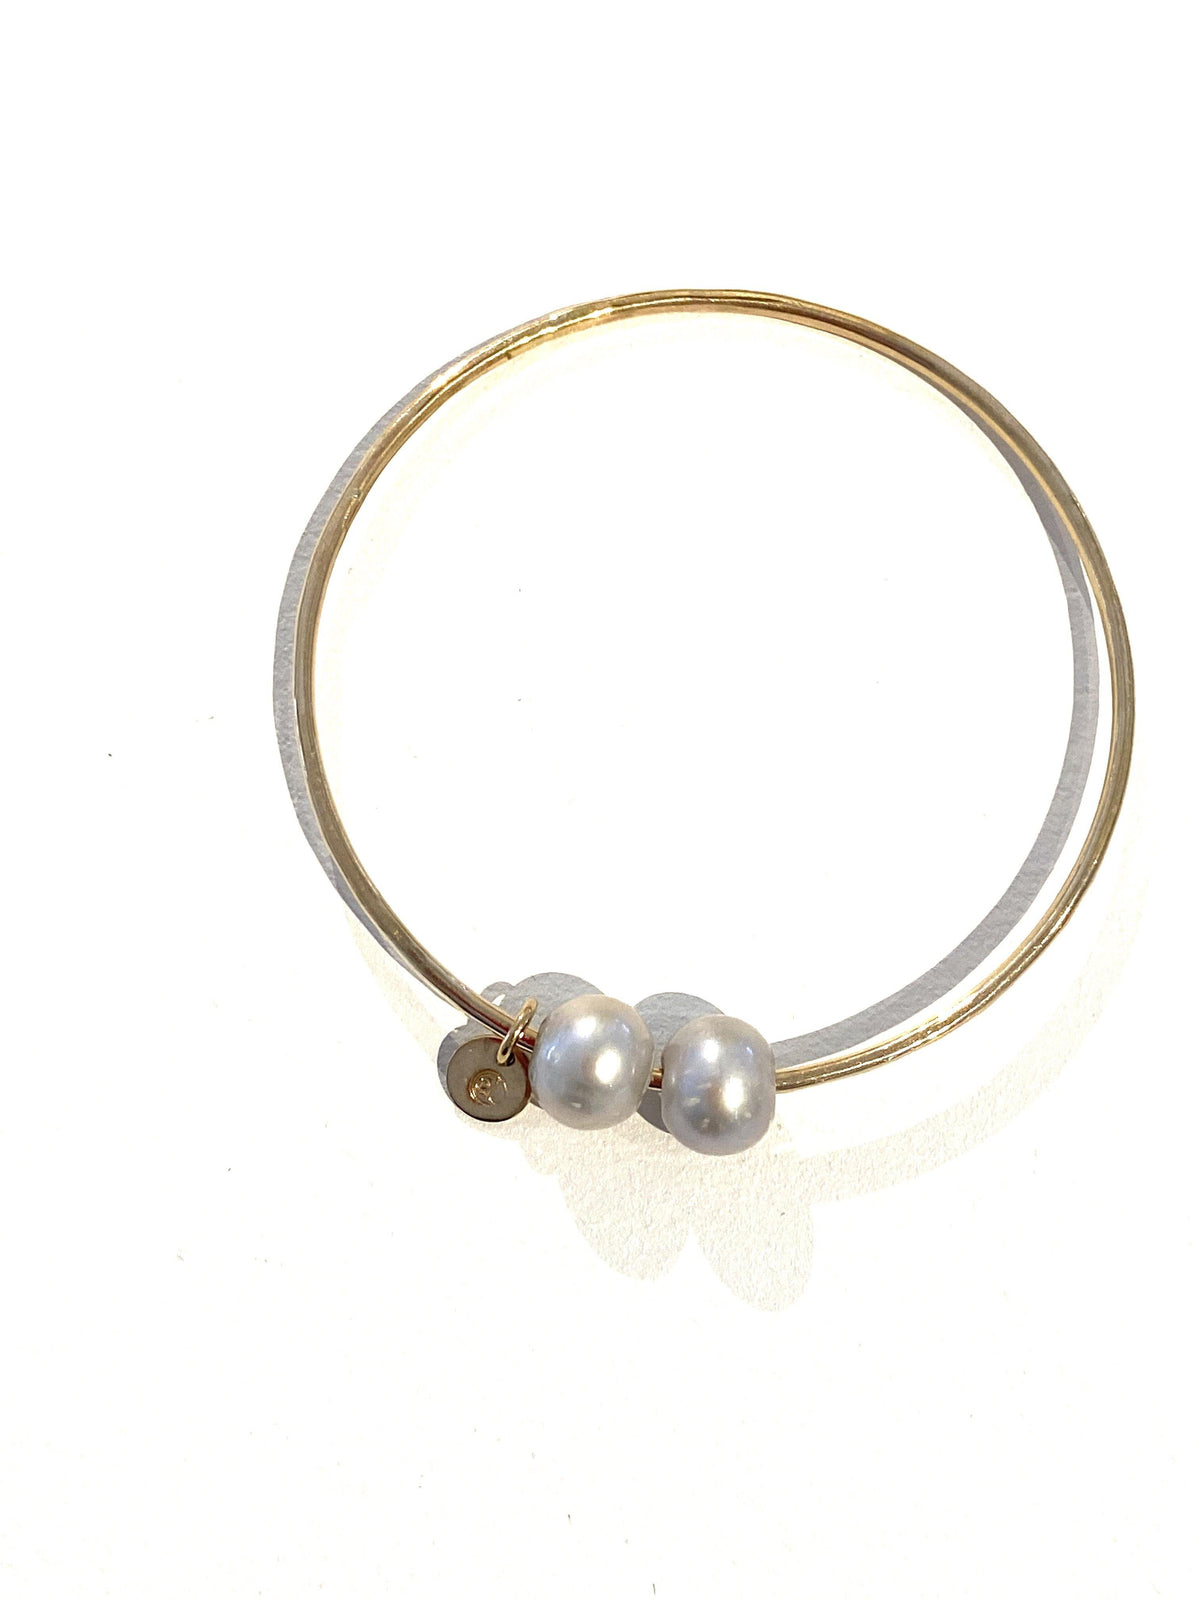 Gold Bangle 2 Pearls - Wheat Boutique